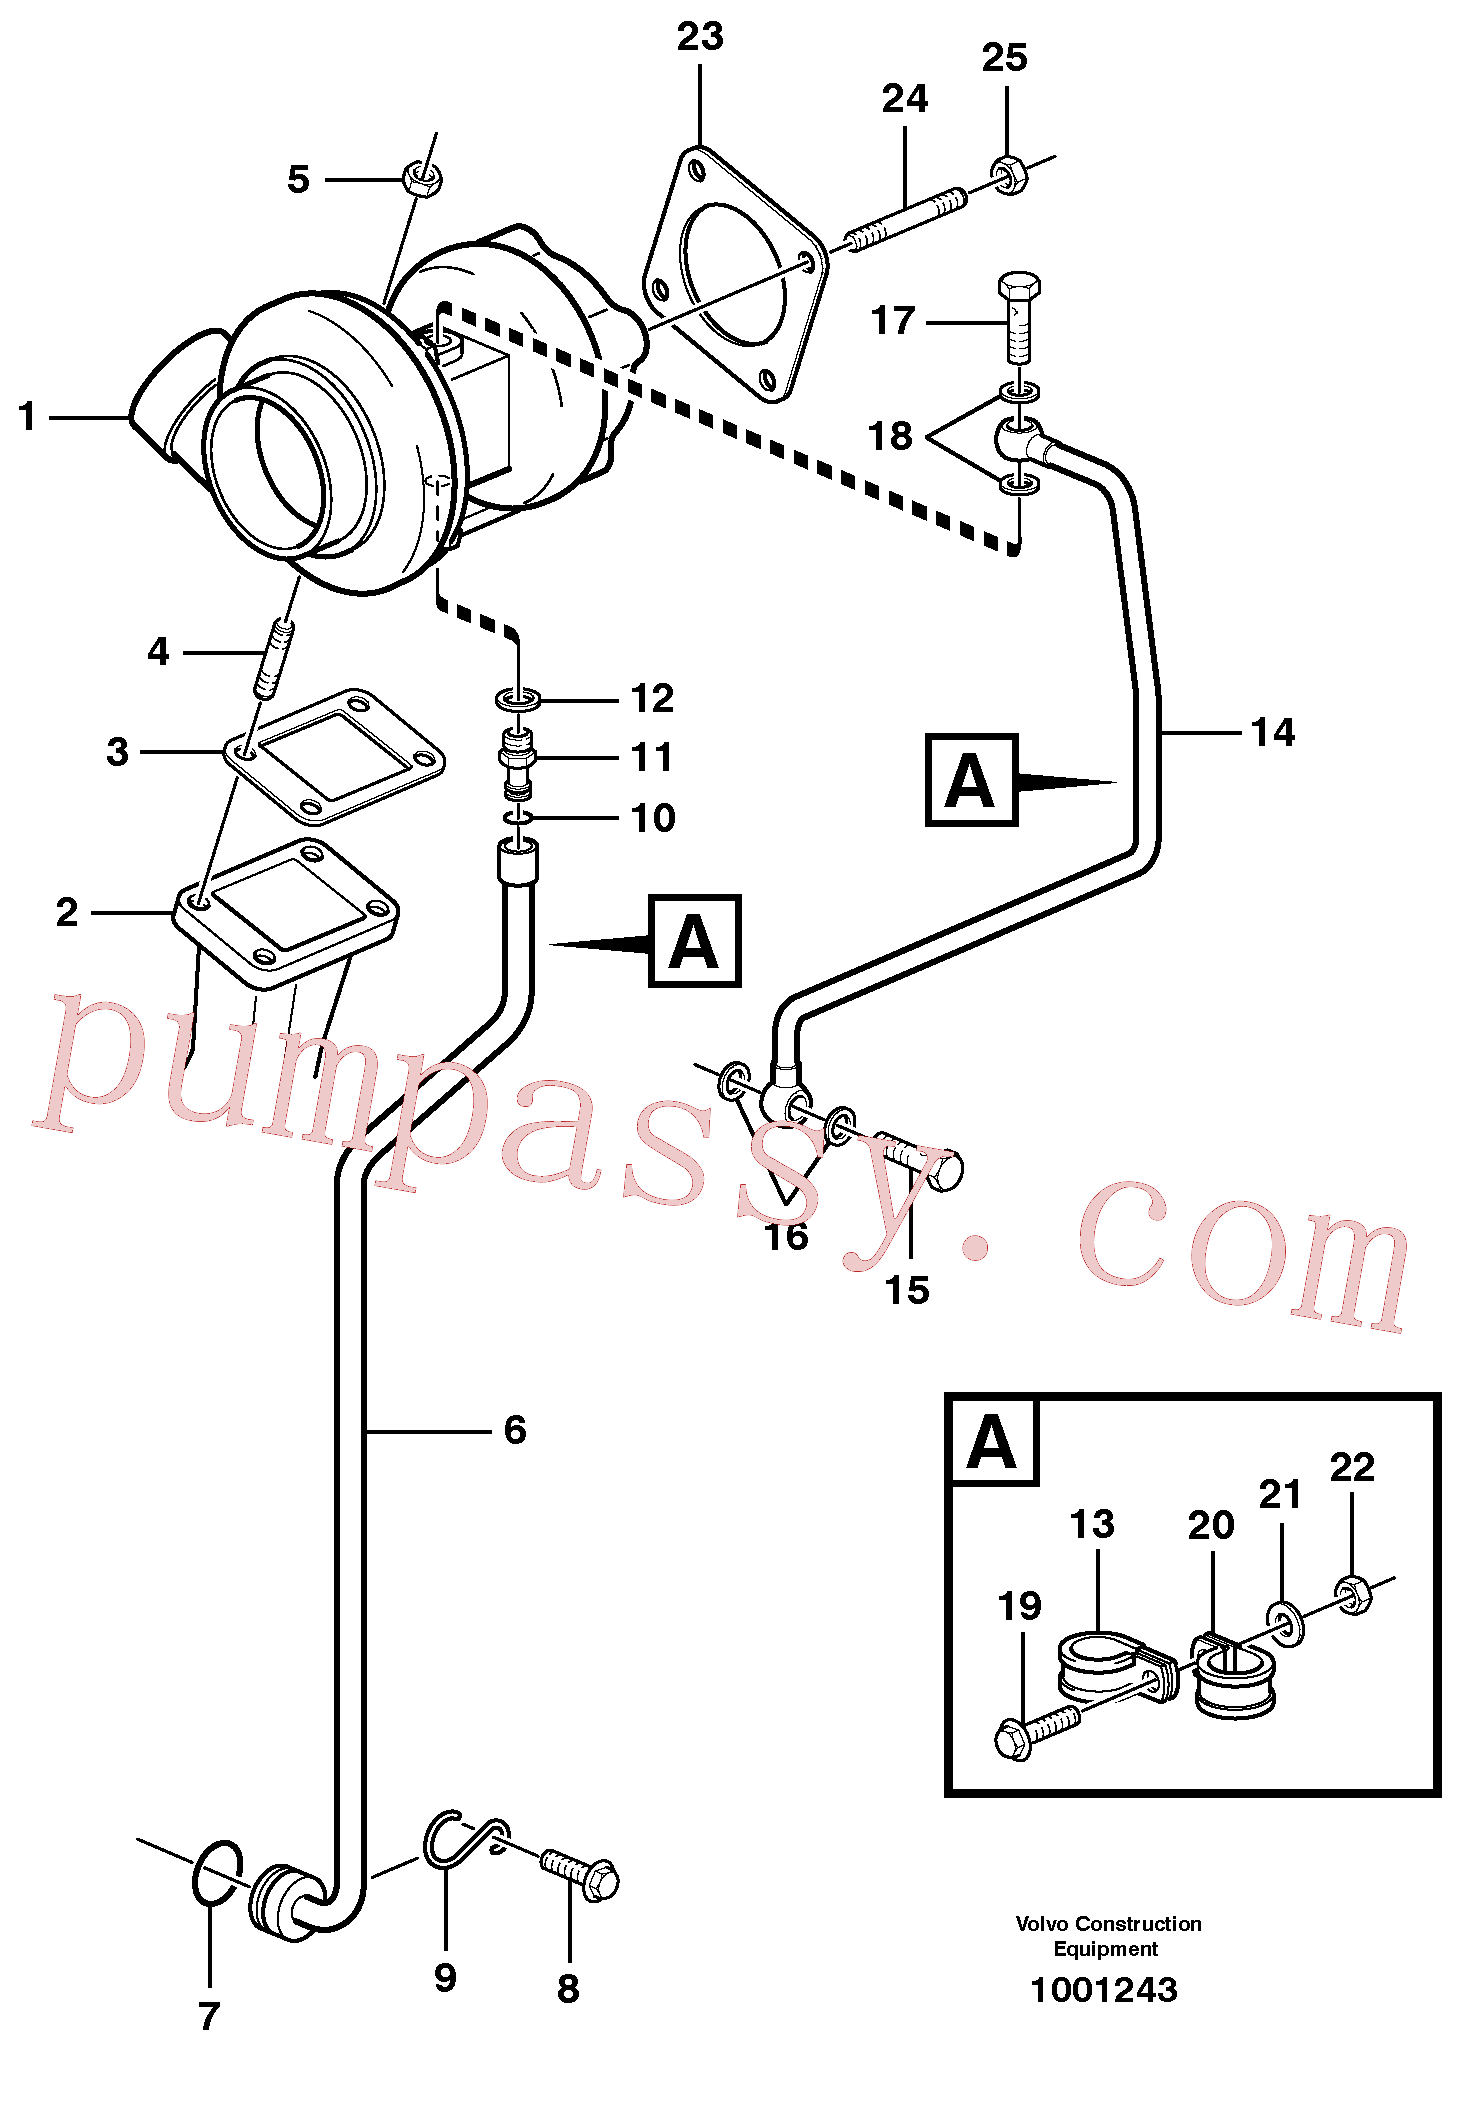 VOE20460939 for Volvo Turbocharger with fitting parts(1001243 assembly)